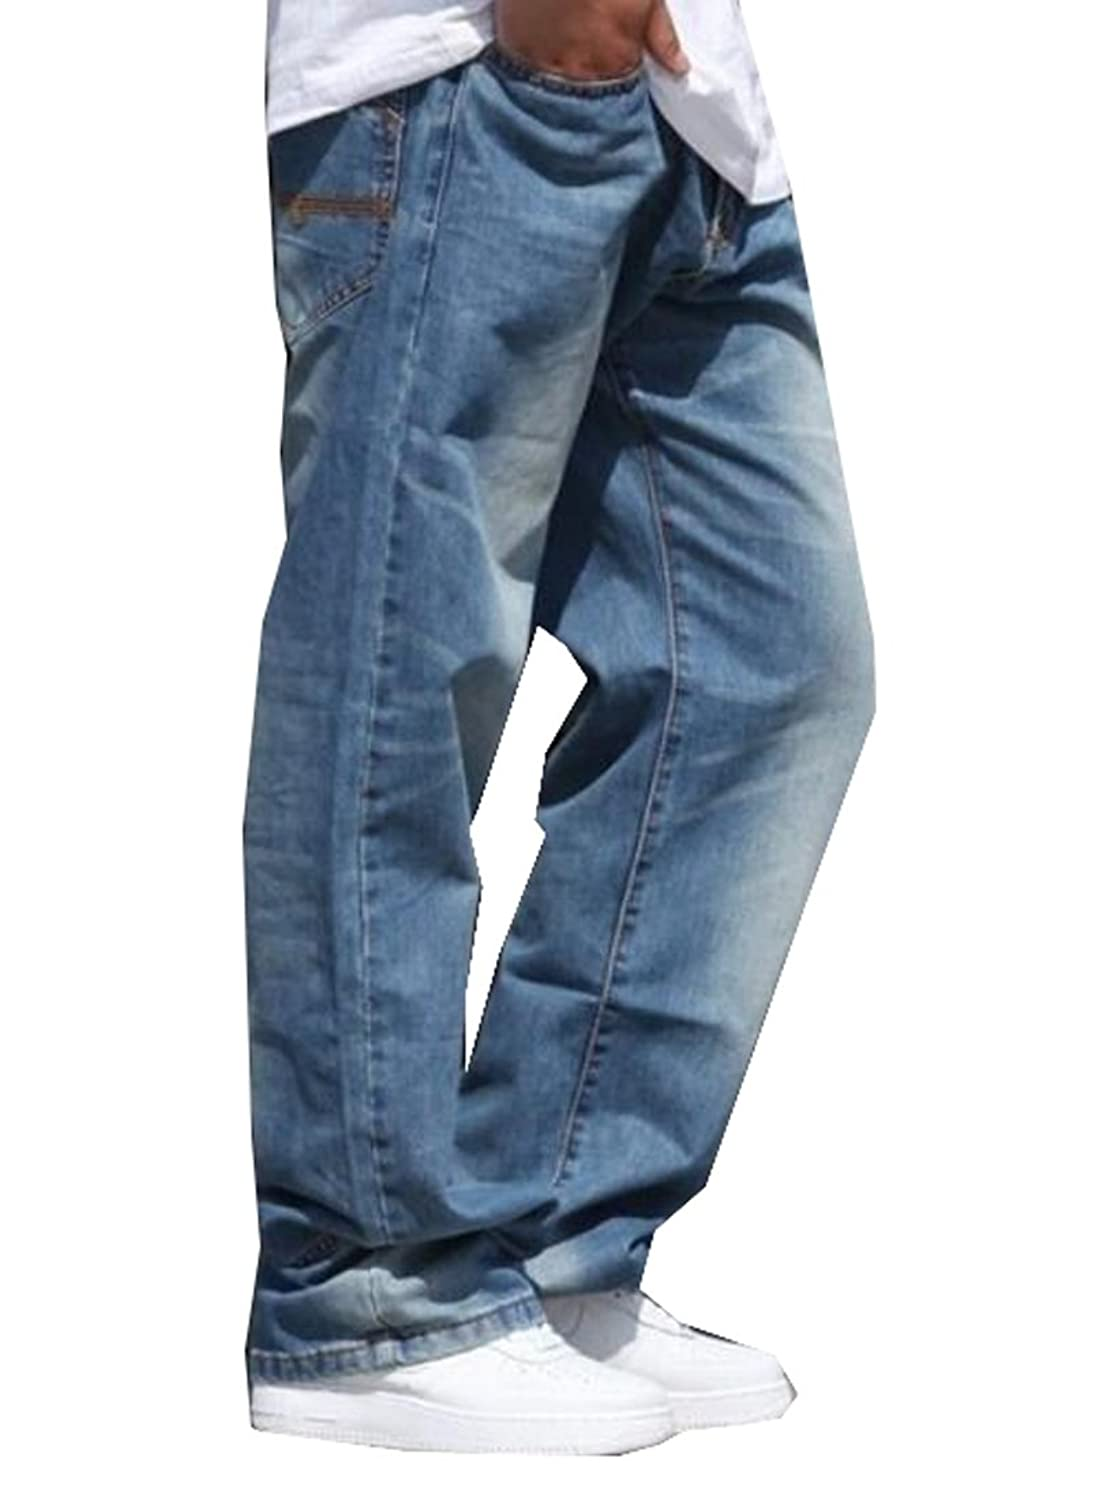 MLG Men's Casual Style Washed Straight Denim Jeans